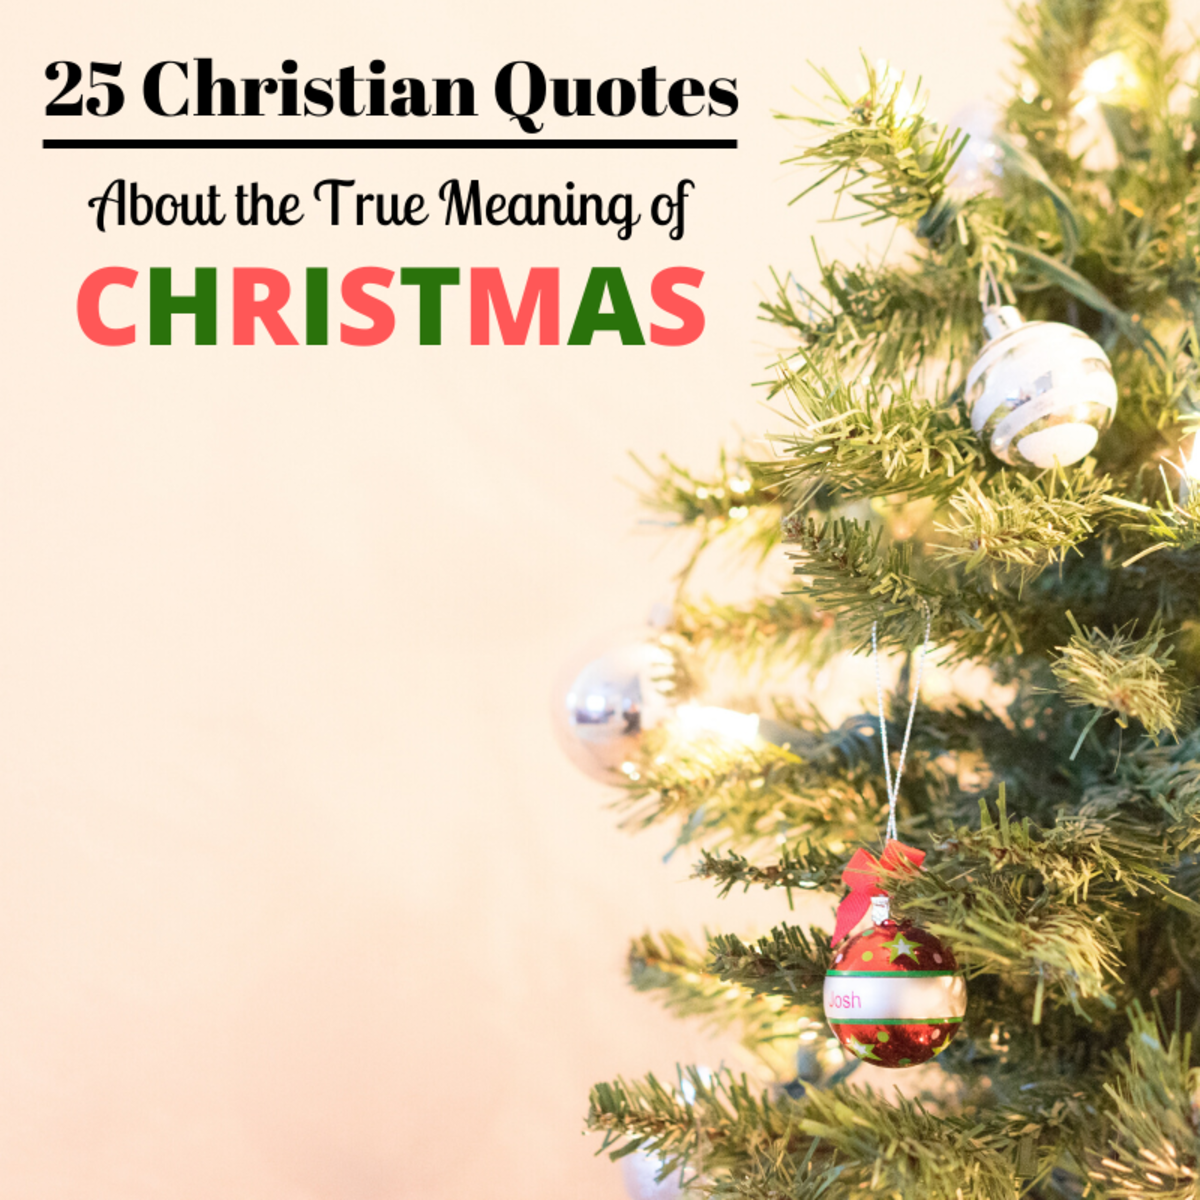 25 Christian Quotes About Christmas and Its True Meaning